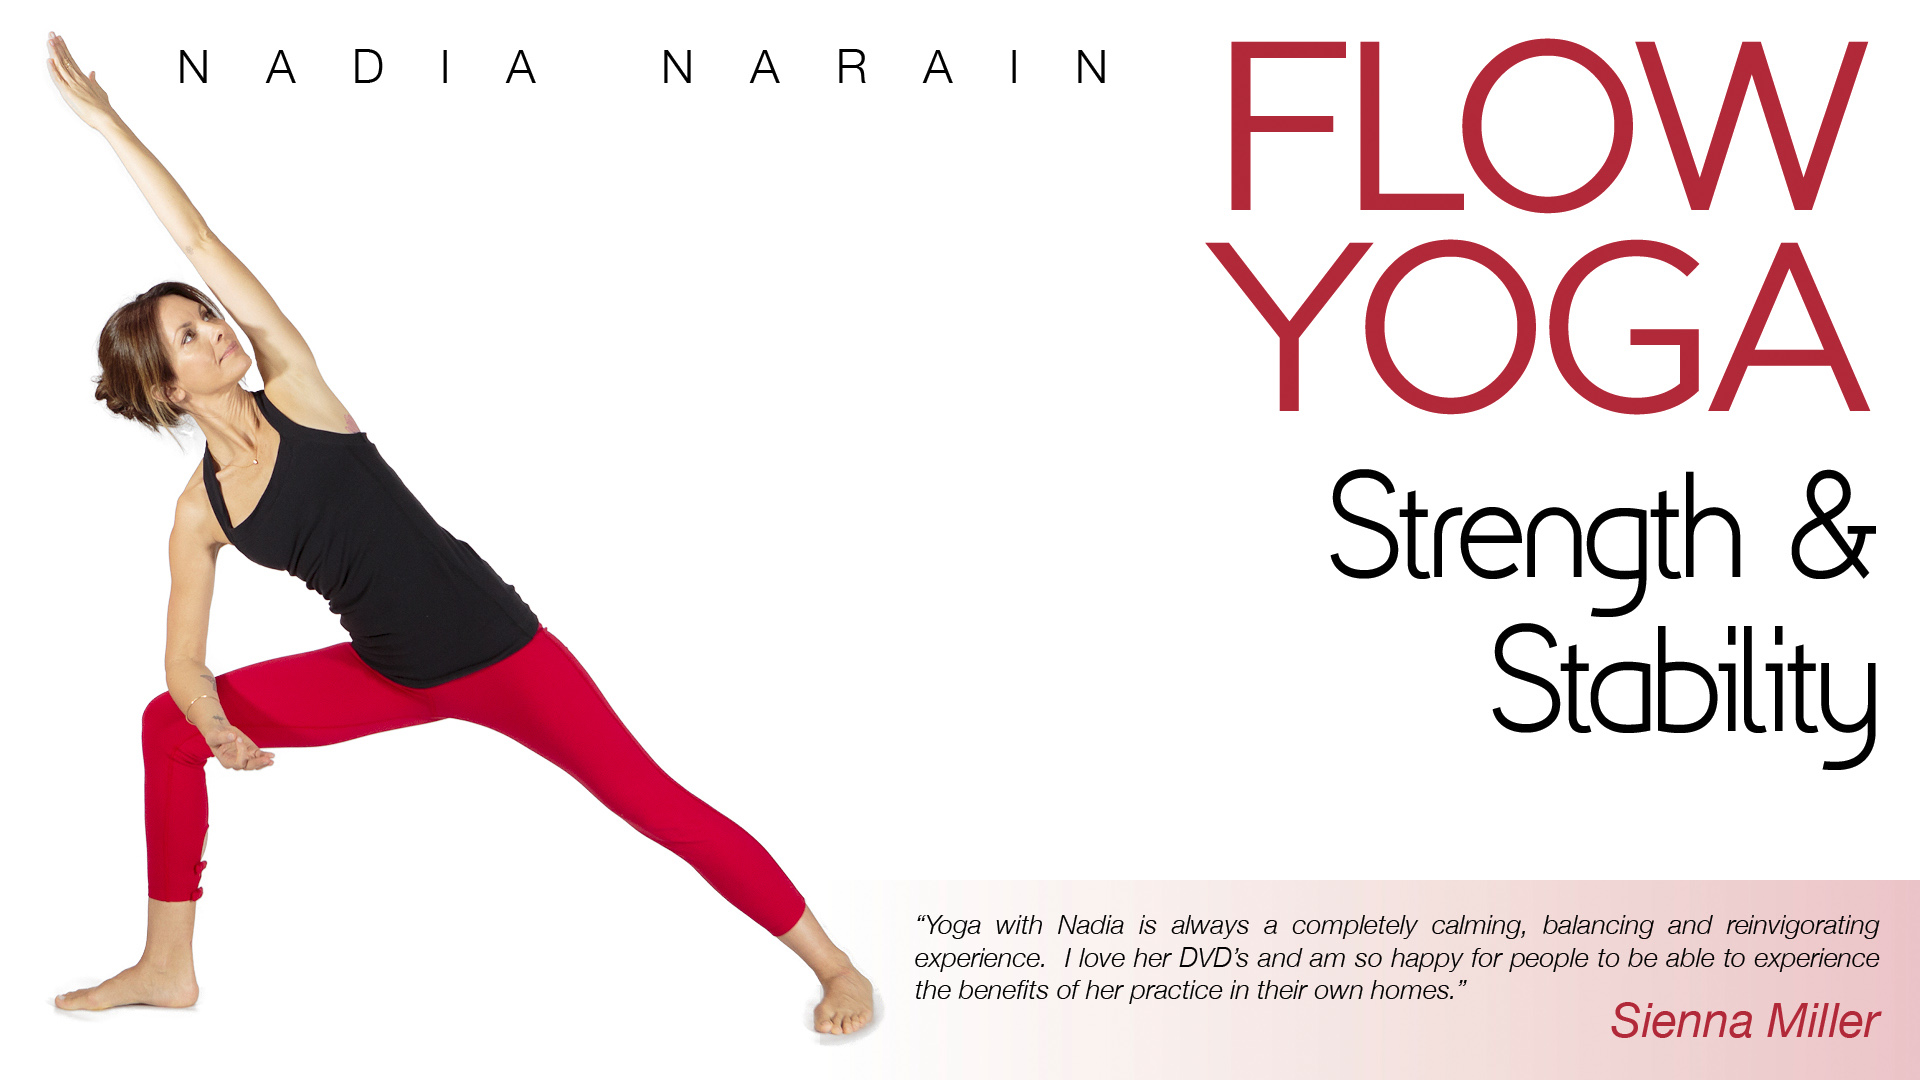 Flow Yoga: Strength & Stability with Nadia Narain